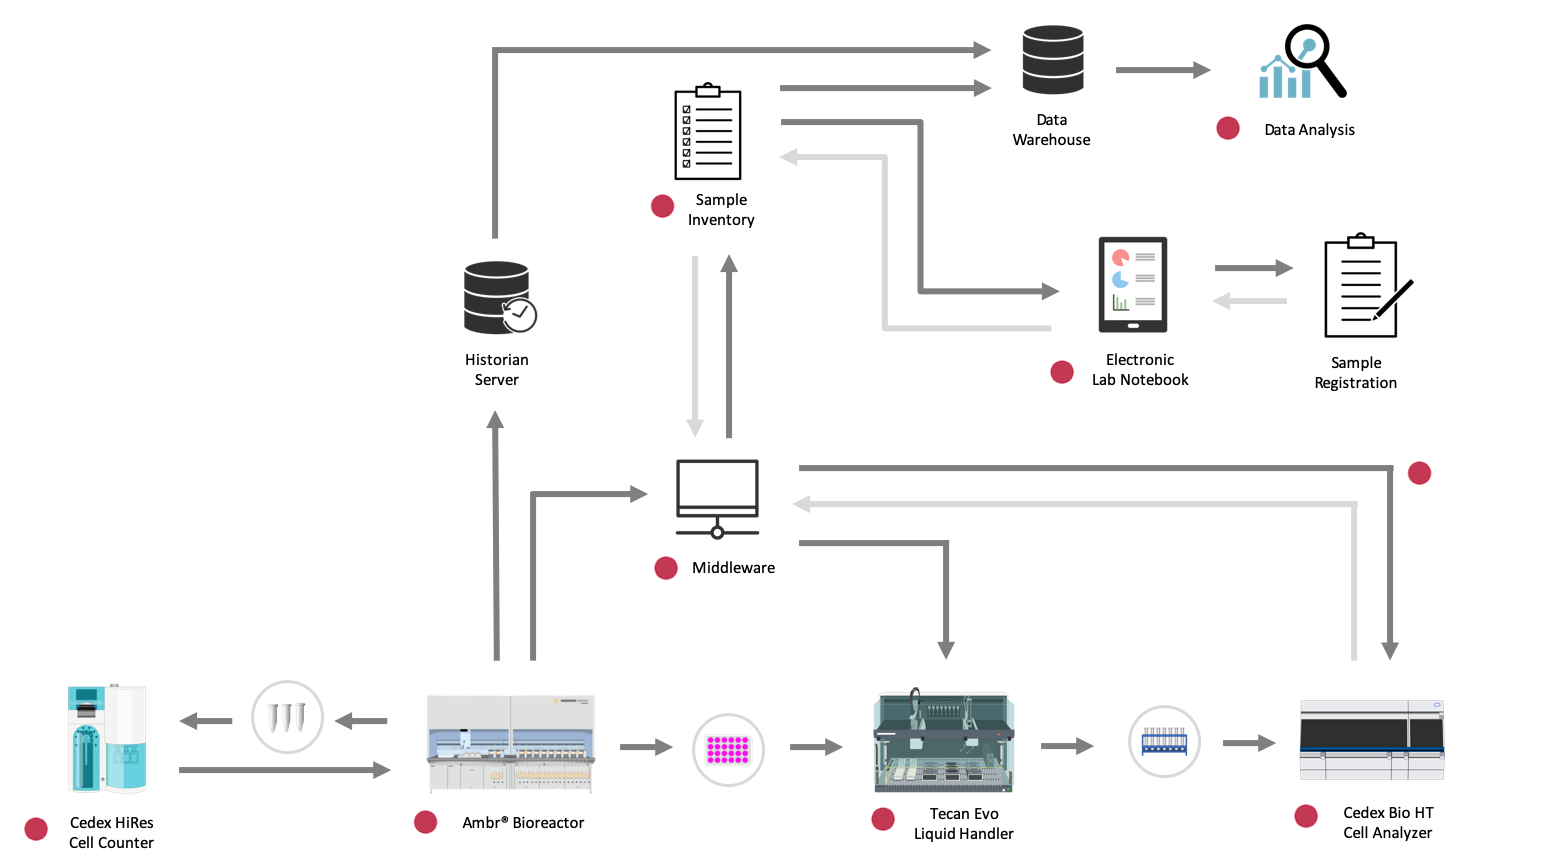 Bioprocessing data ecosystem: Flow diagram demonstrates the complicated movement of data within an upstream bioprocessing unit operation.  Red dots signal manual data touch-points.